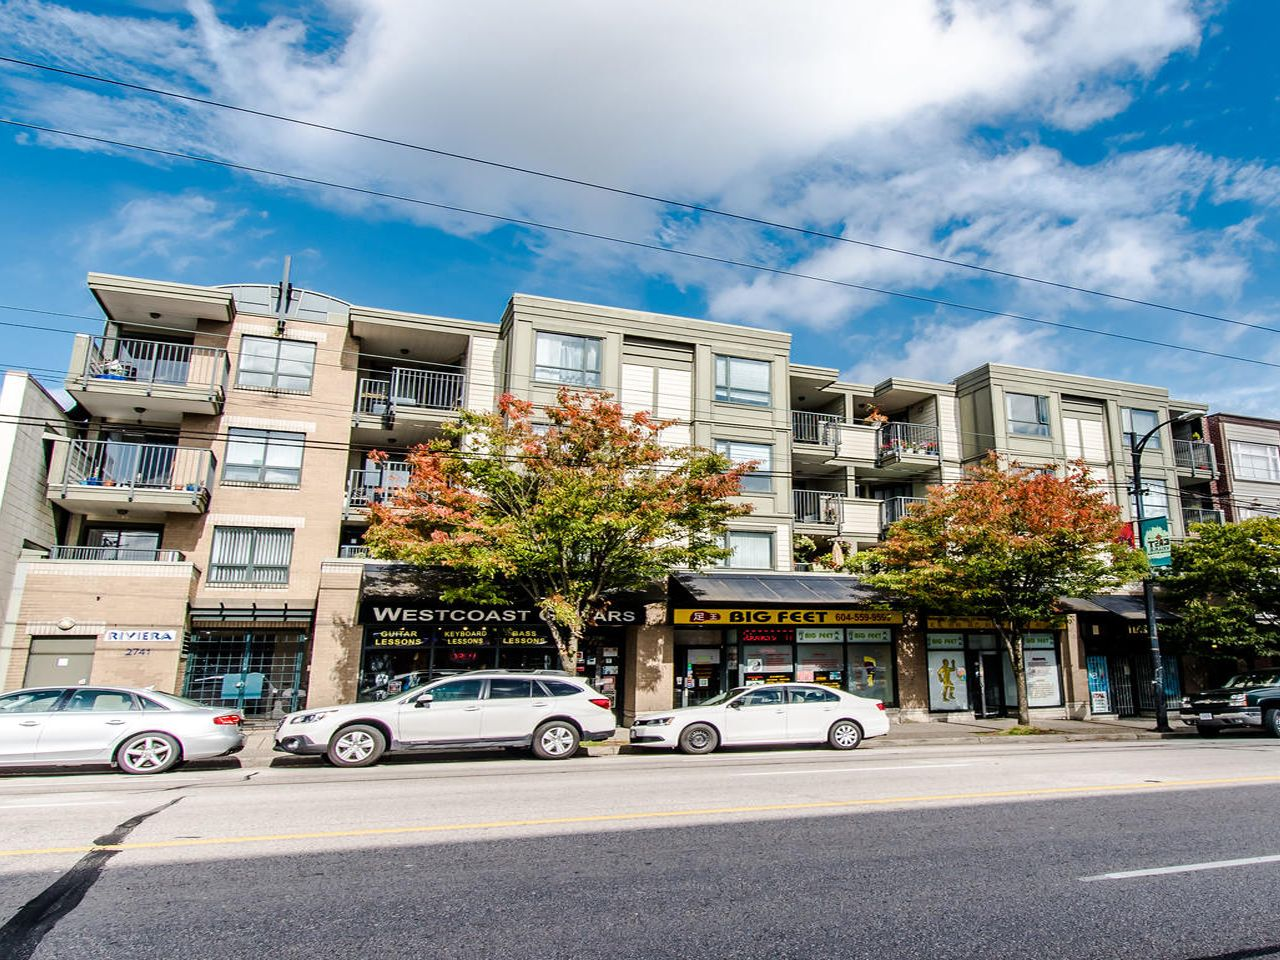 Main Photo: 201 2741 E Hastings Street in Vancouver: Hastings Sunrise Condo for sale (Vancouver East)  : MLS®# R2536598